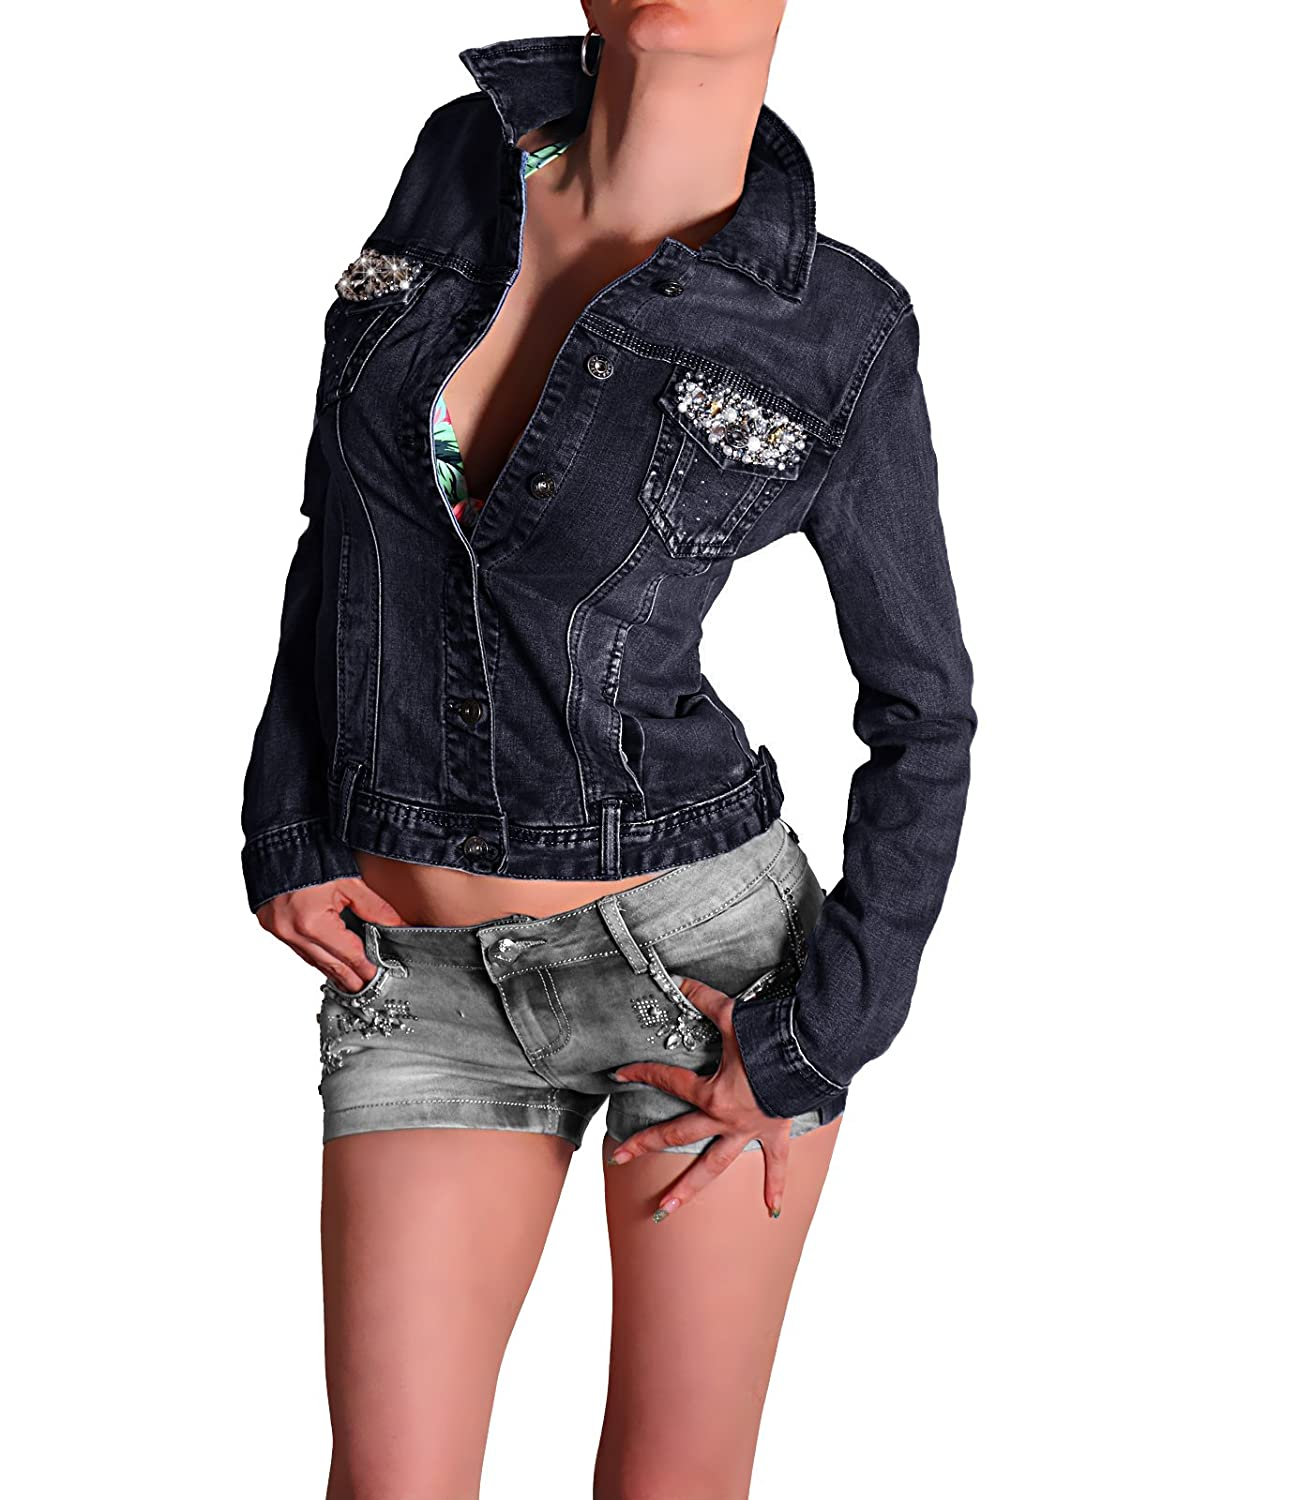 Destroyed Jeansjacke WOW Denim Jacke PUSH UP Exclusive Straß Schwarz-Blau